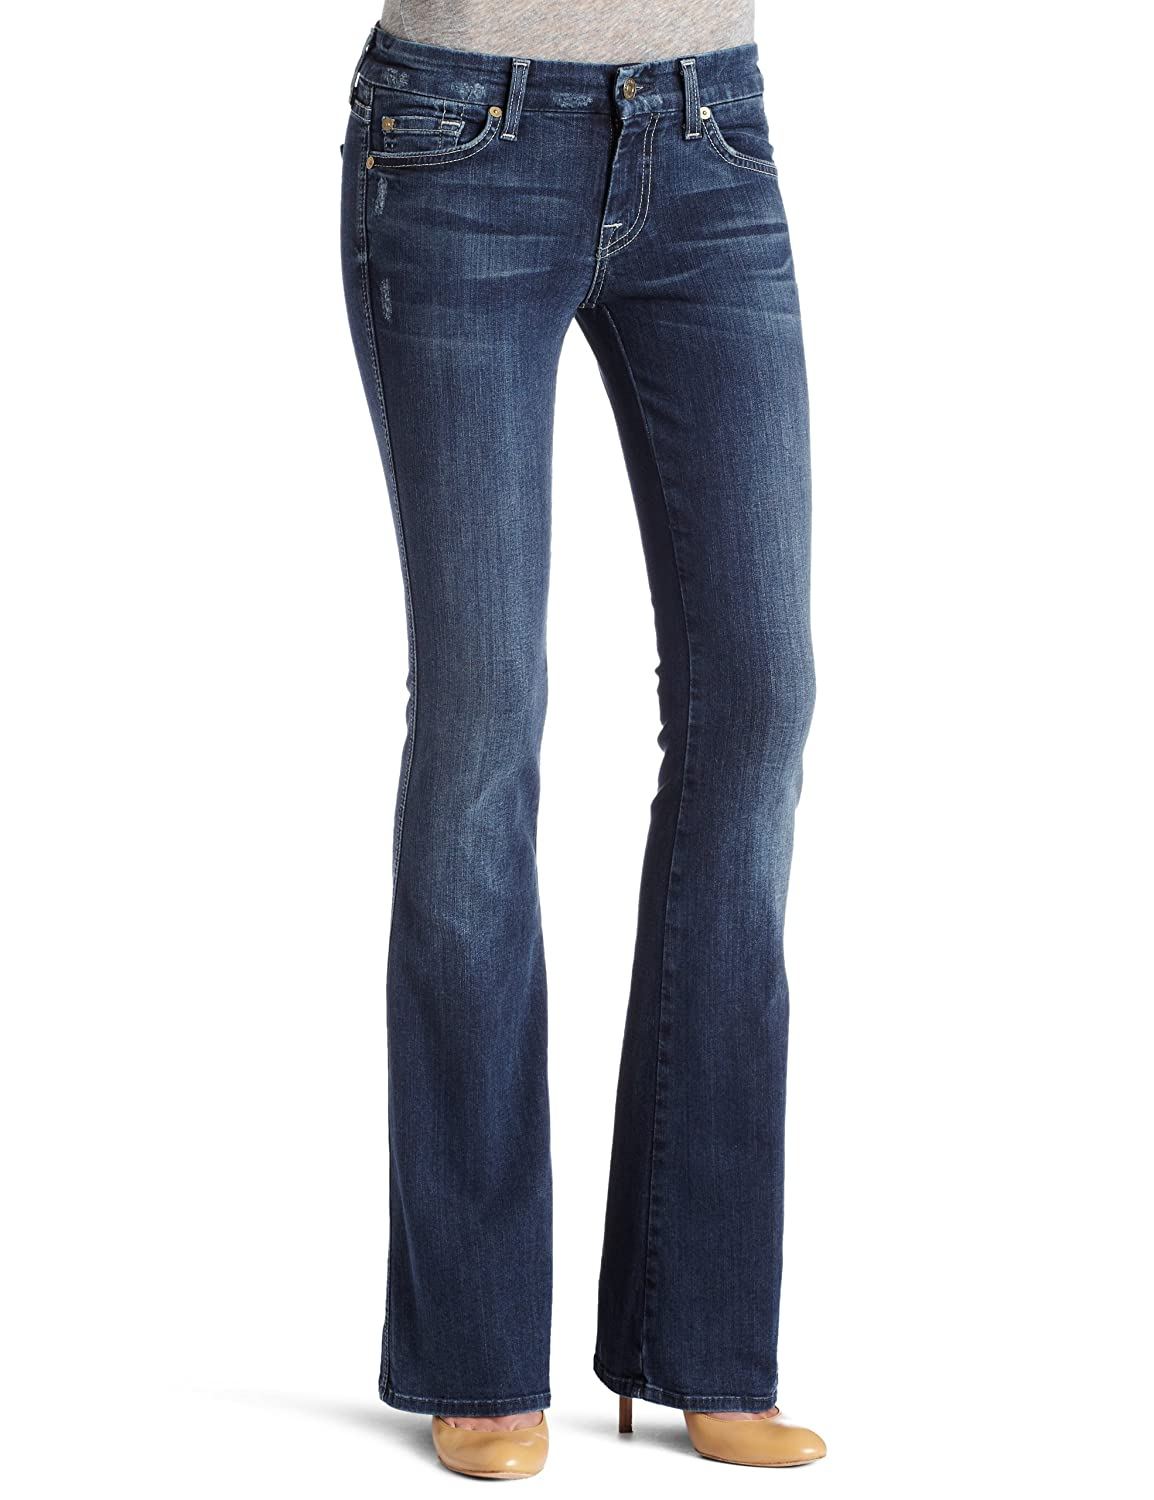 UP TO $20 OFF for DENIM Sale